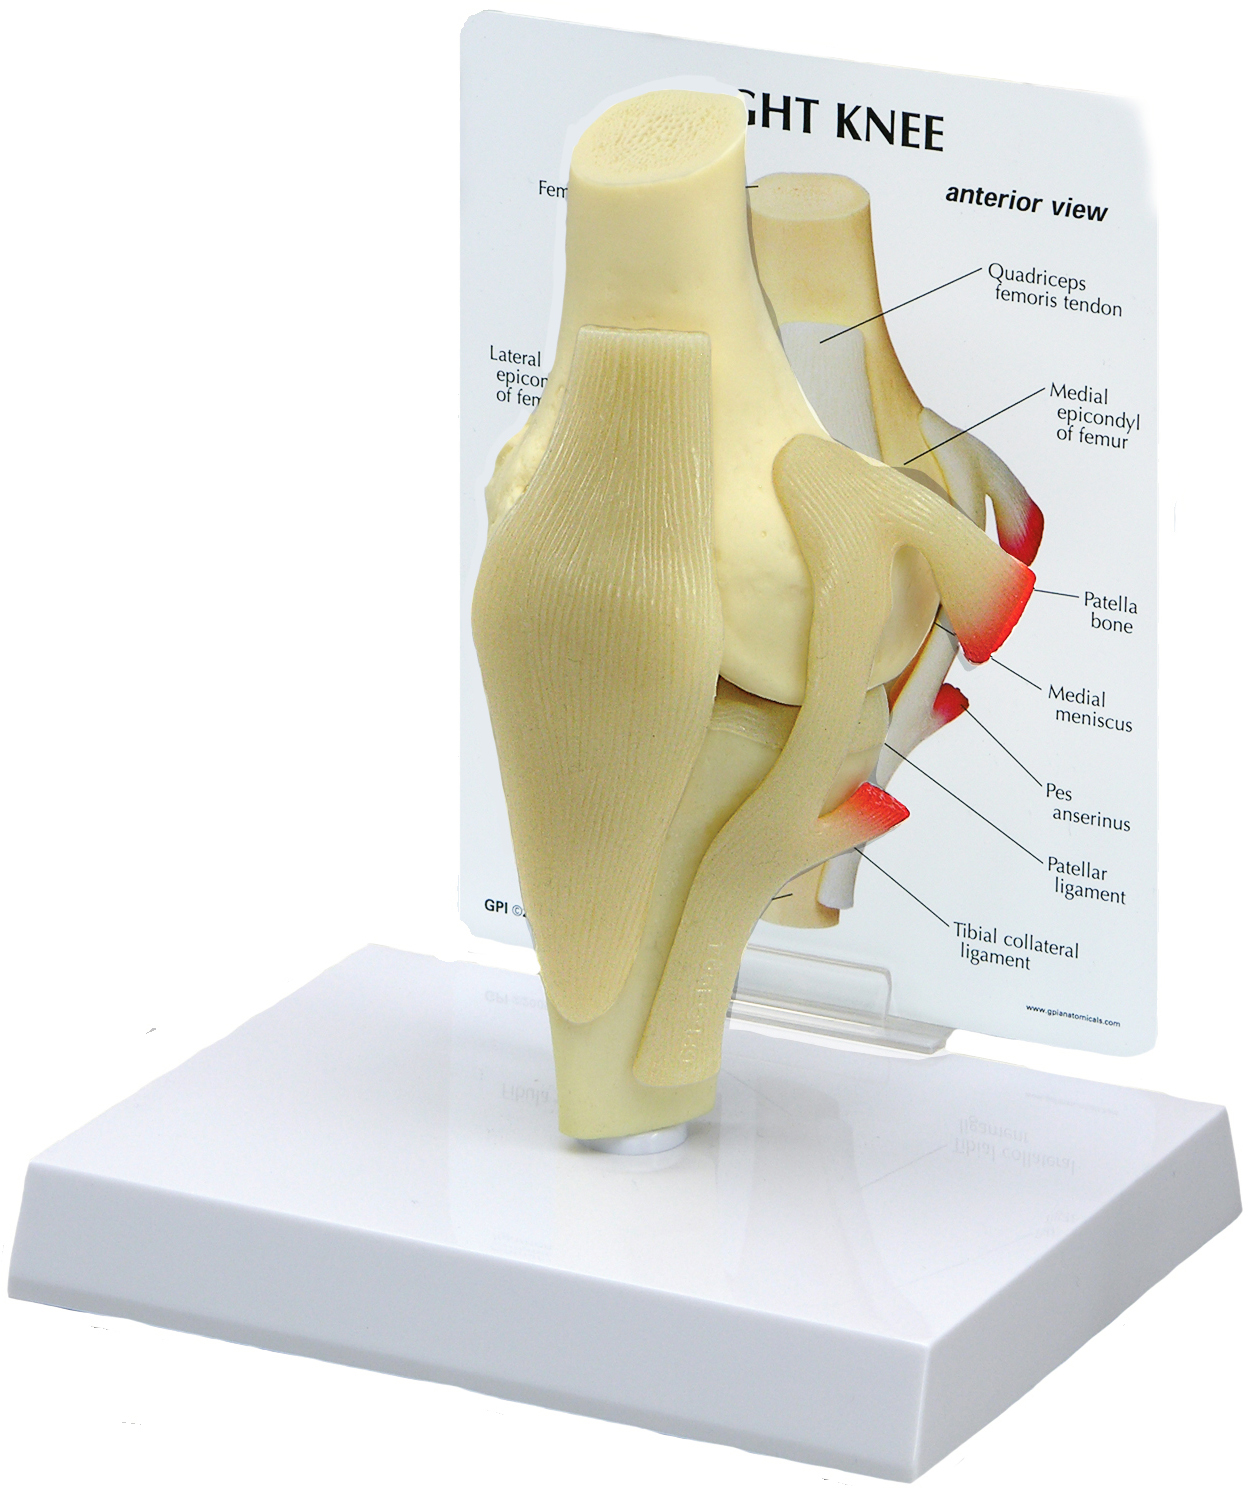 fighting the reproduction of skin and bone models About crc press crc press is a premier global publisher of science, technology, and medical resources we offer unique, trusted content by expert authors.